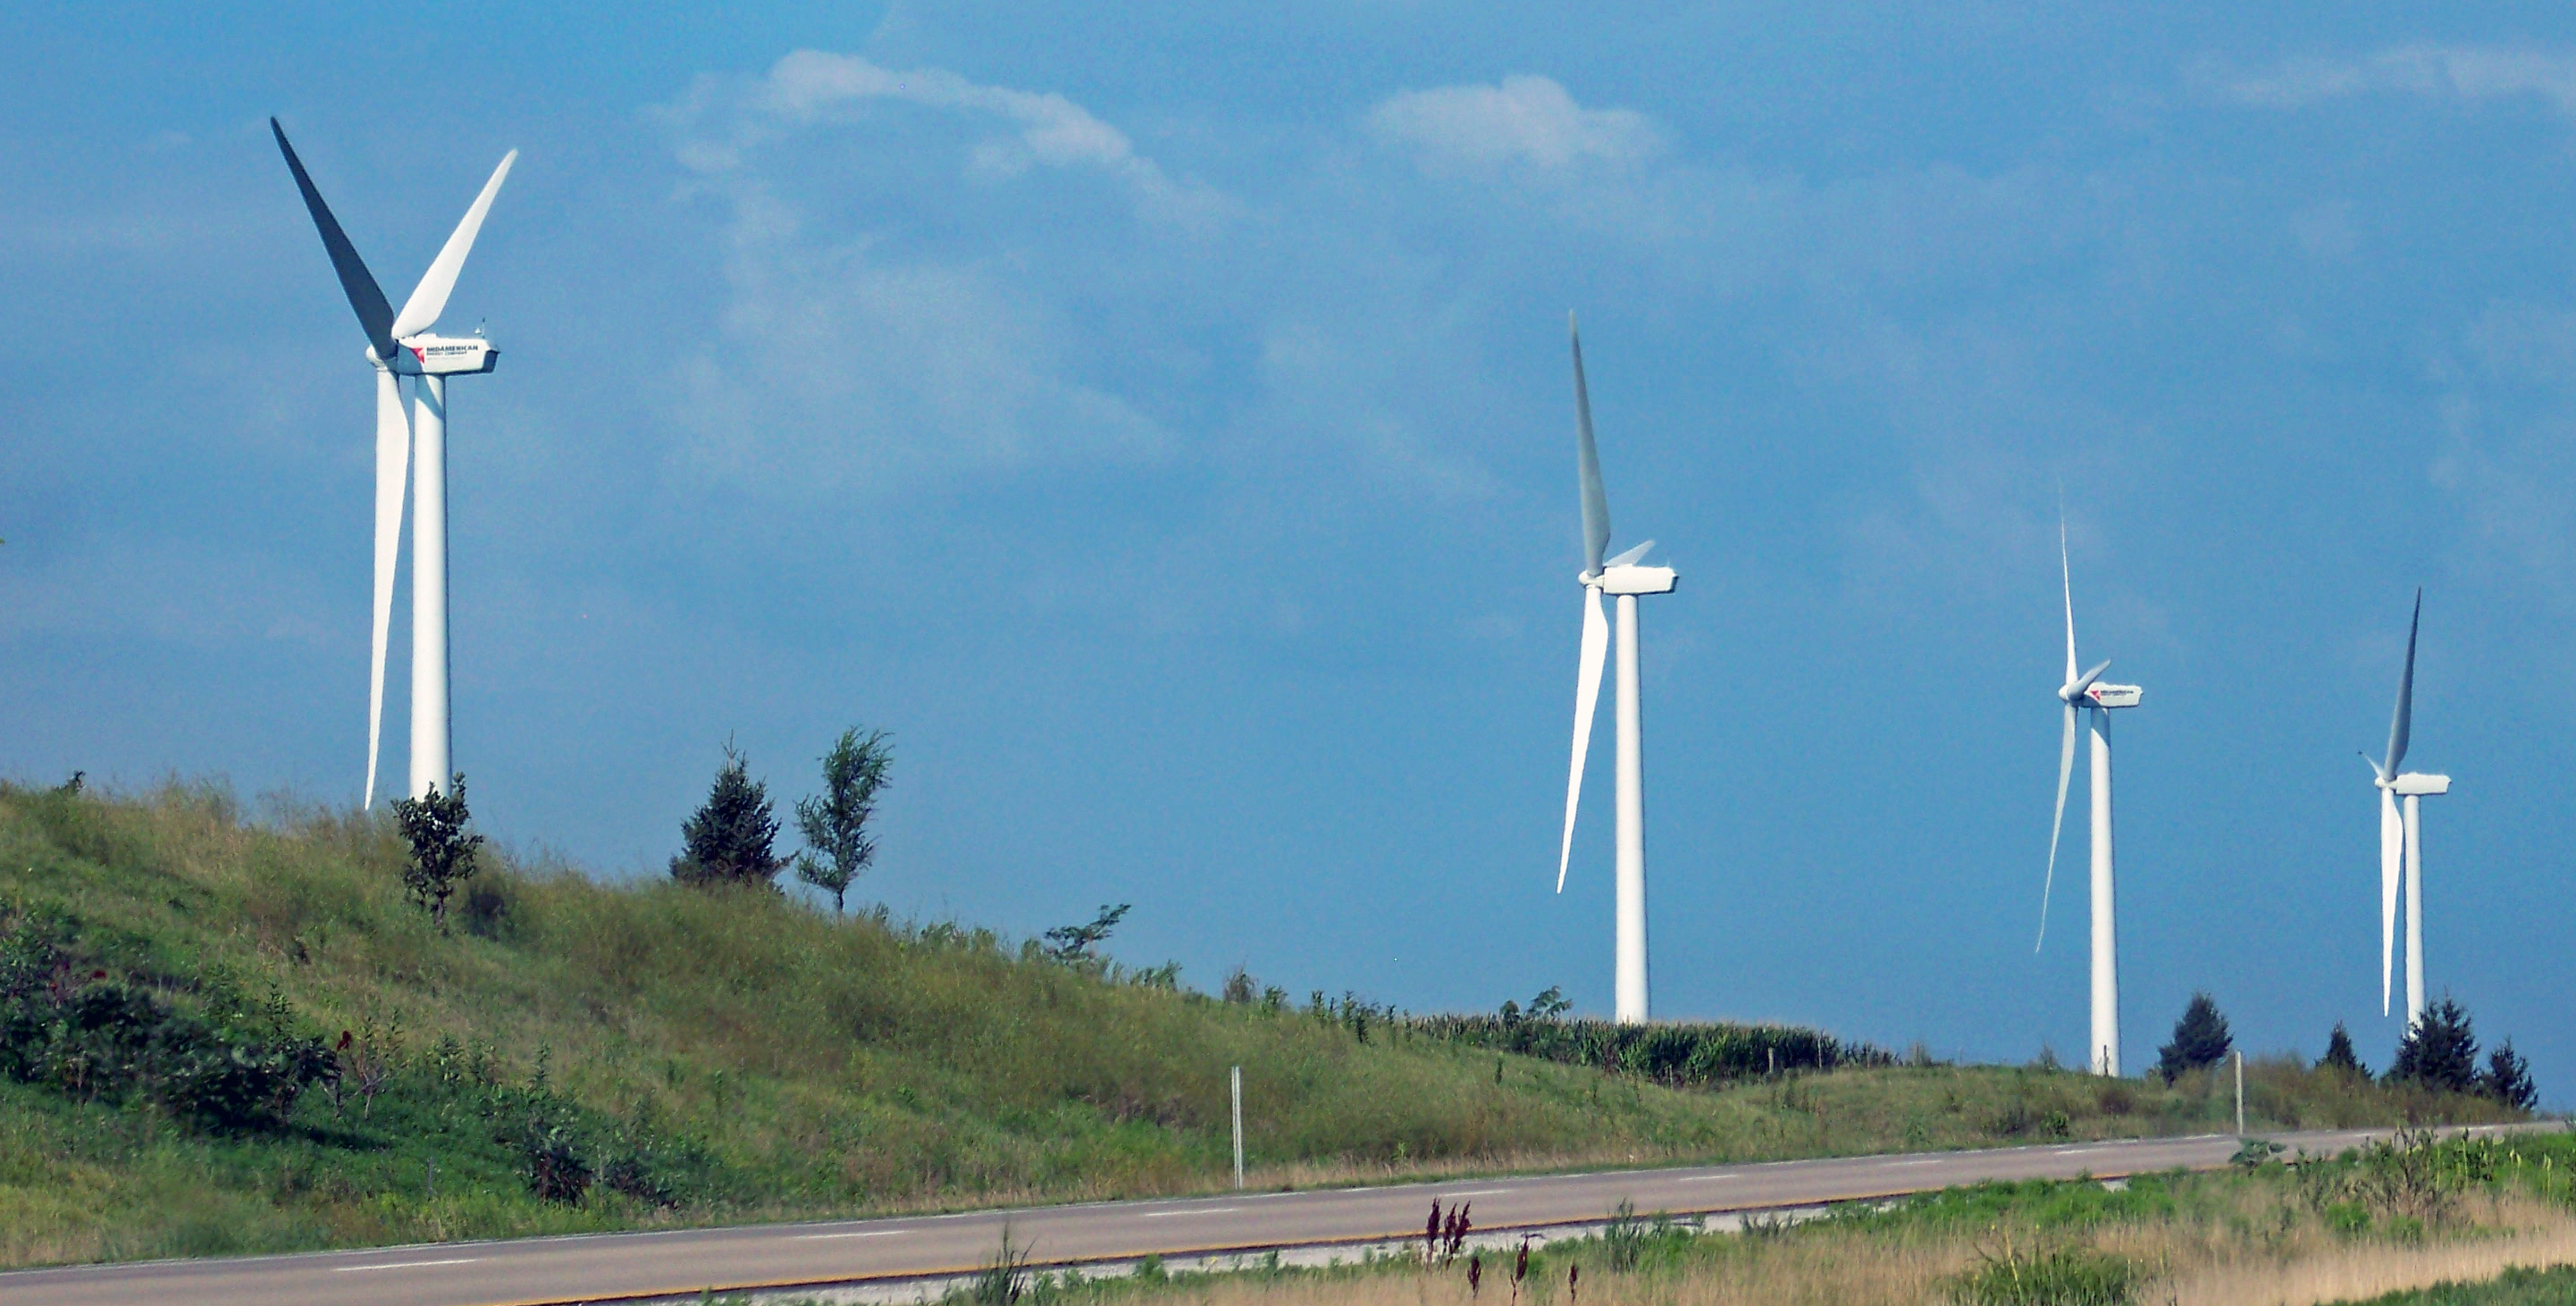 Federal Government to Revise Leasing Rules for Wind and Solar on Public Lands